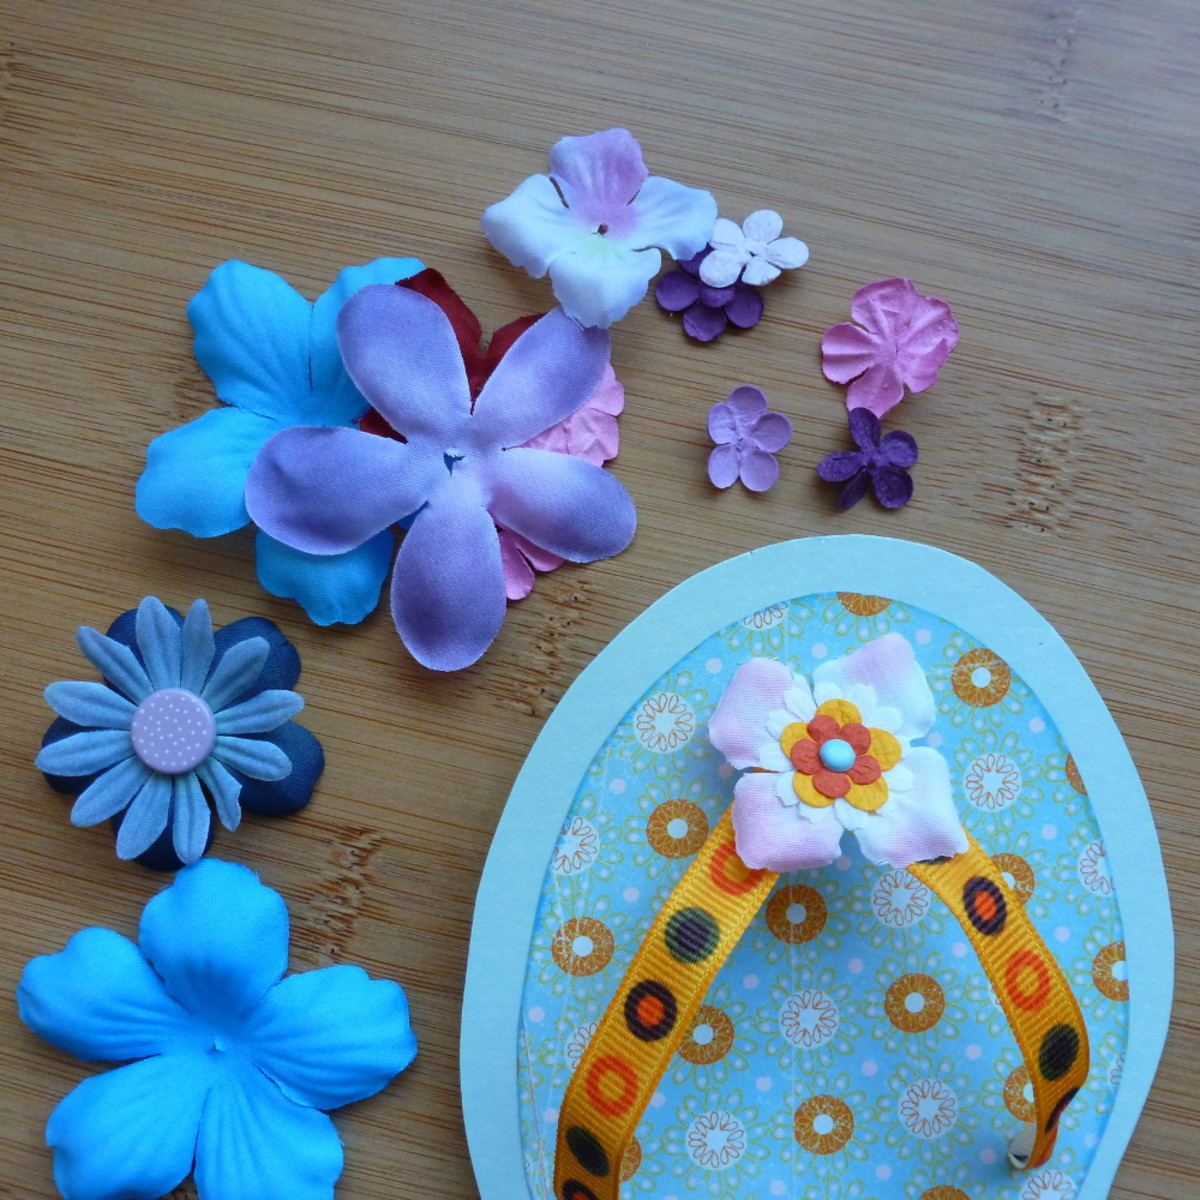 67eaa1ee0 Adding floral embellishments to the shoe card handmade DIY flip flop cards  to make.